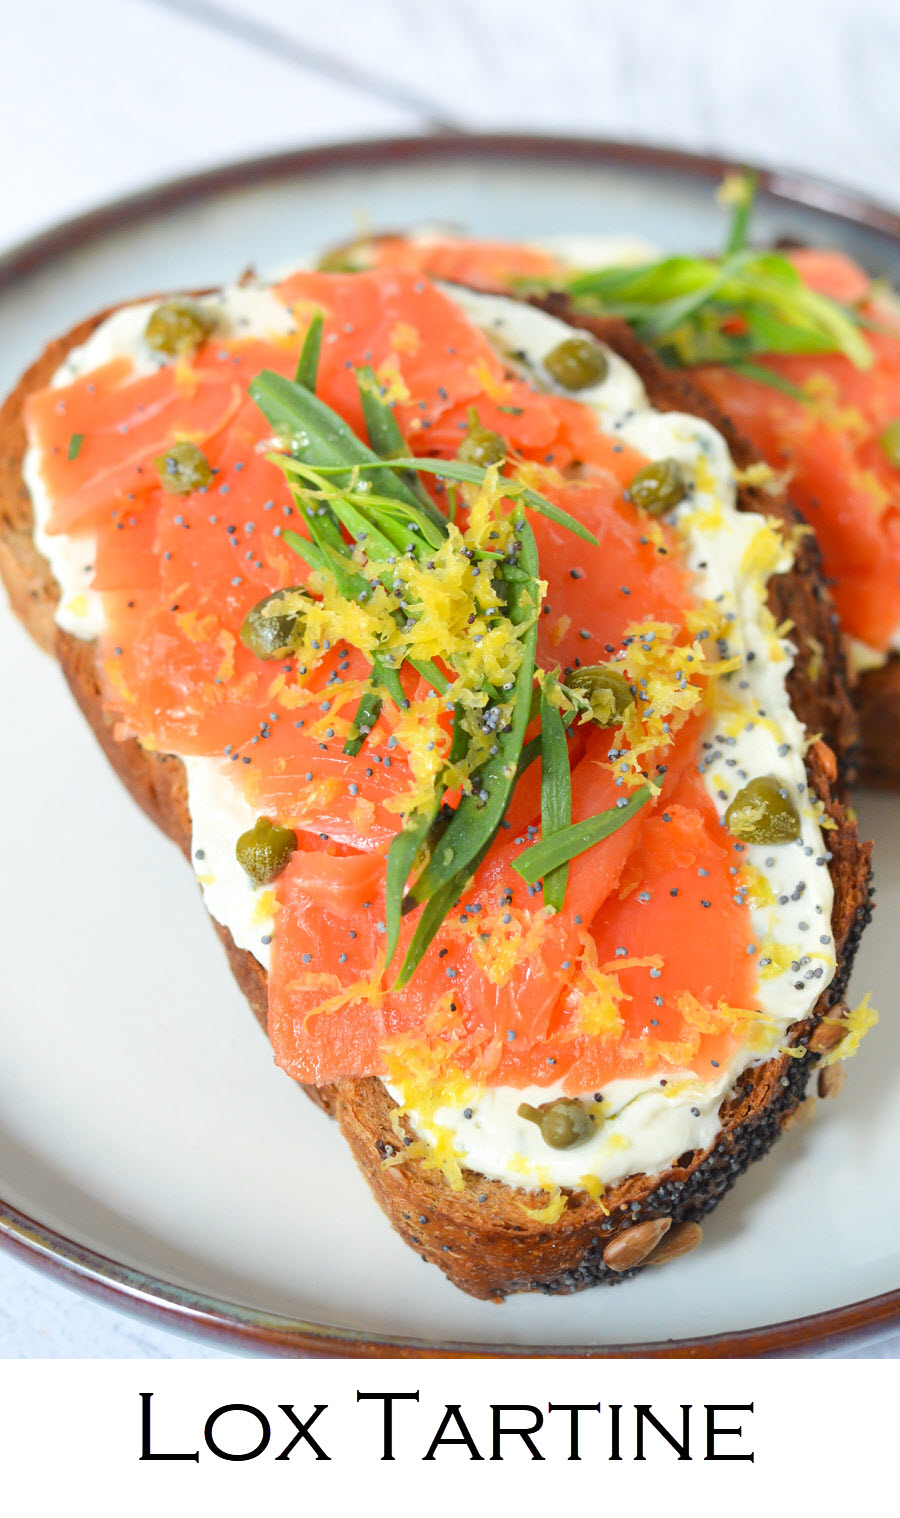 Lox Tartine Breakfast or Dinner. Whip up this easy smoked salmon tartine for breakfast, lunch, or dinner. Good lox layered over goat cheese on delicious bread! #breakfast #brunch #salmon #tartine #toasts #recipe #foodblog #homemade #foodblogger #lmrecipes